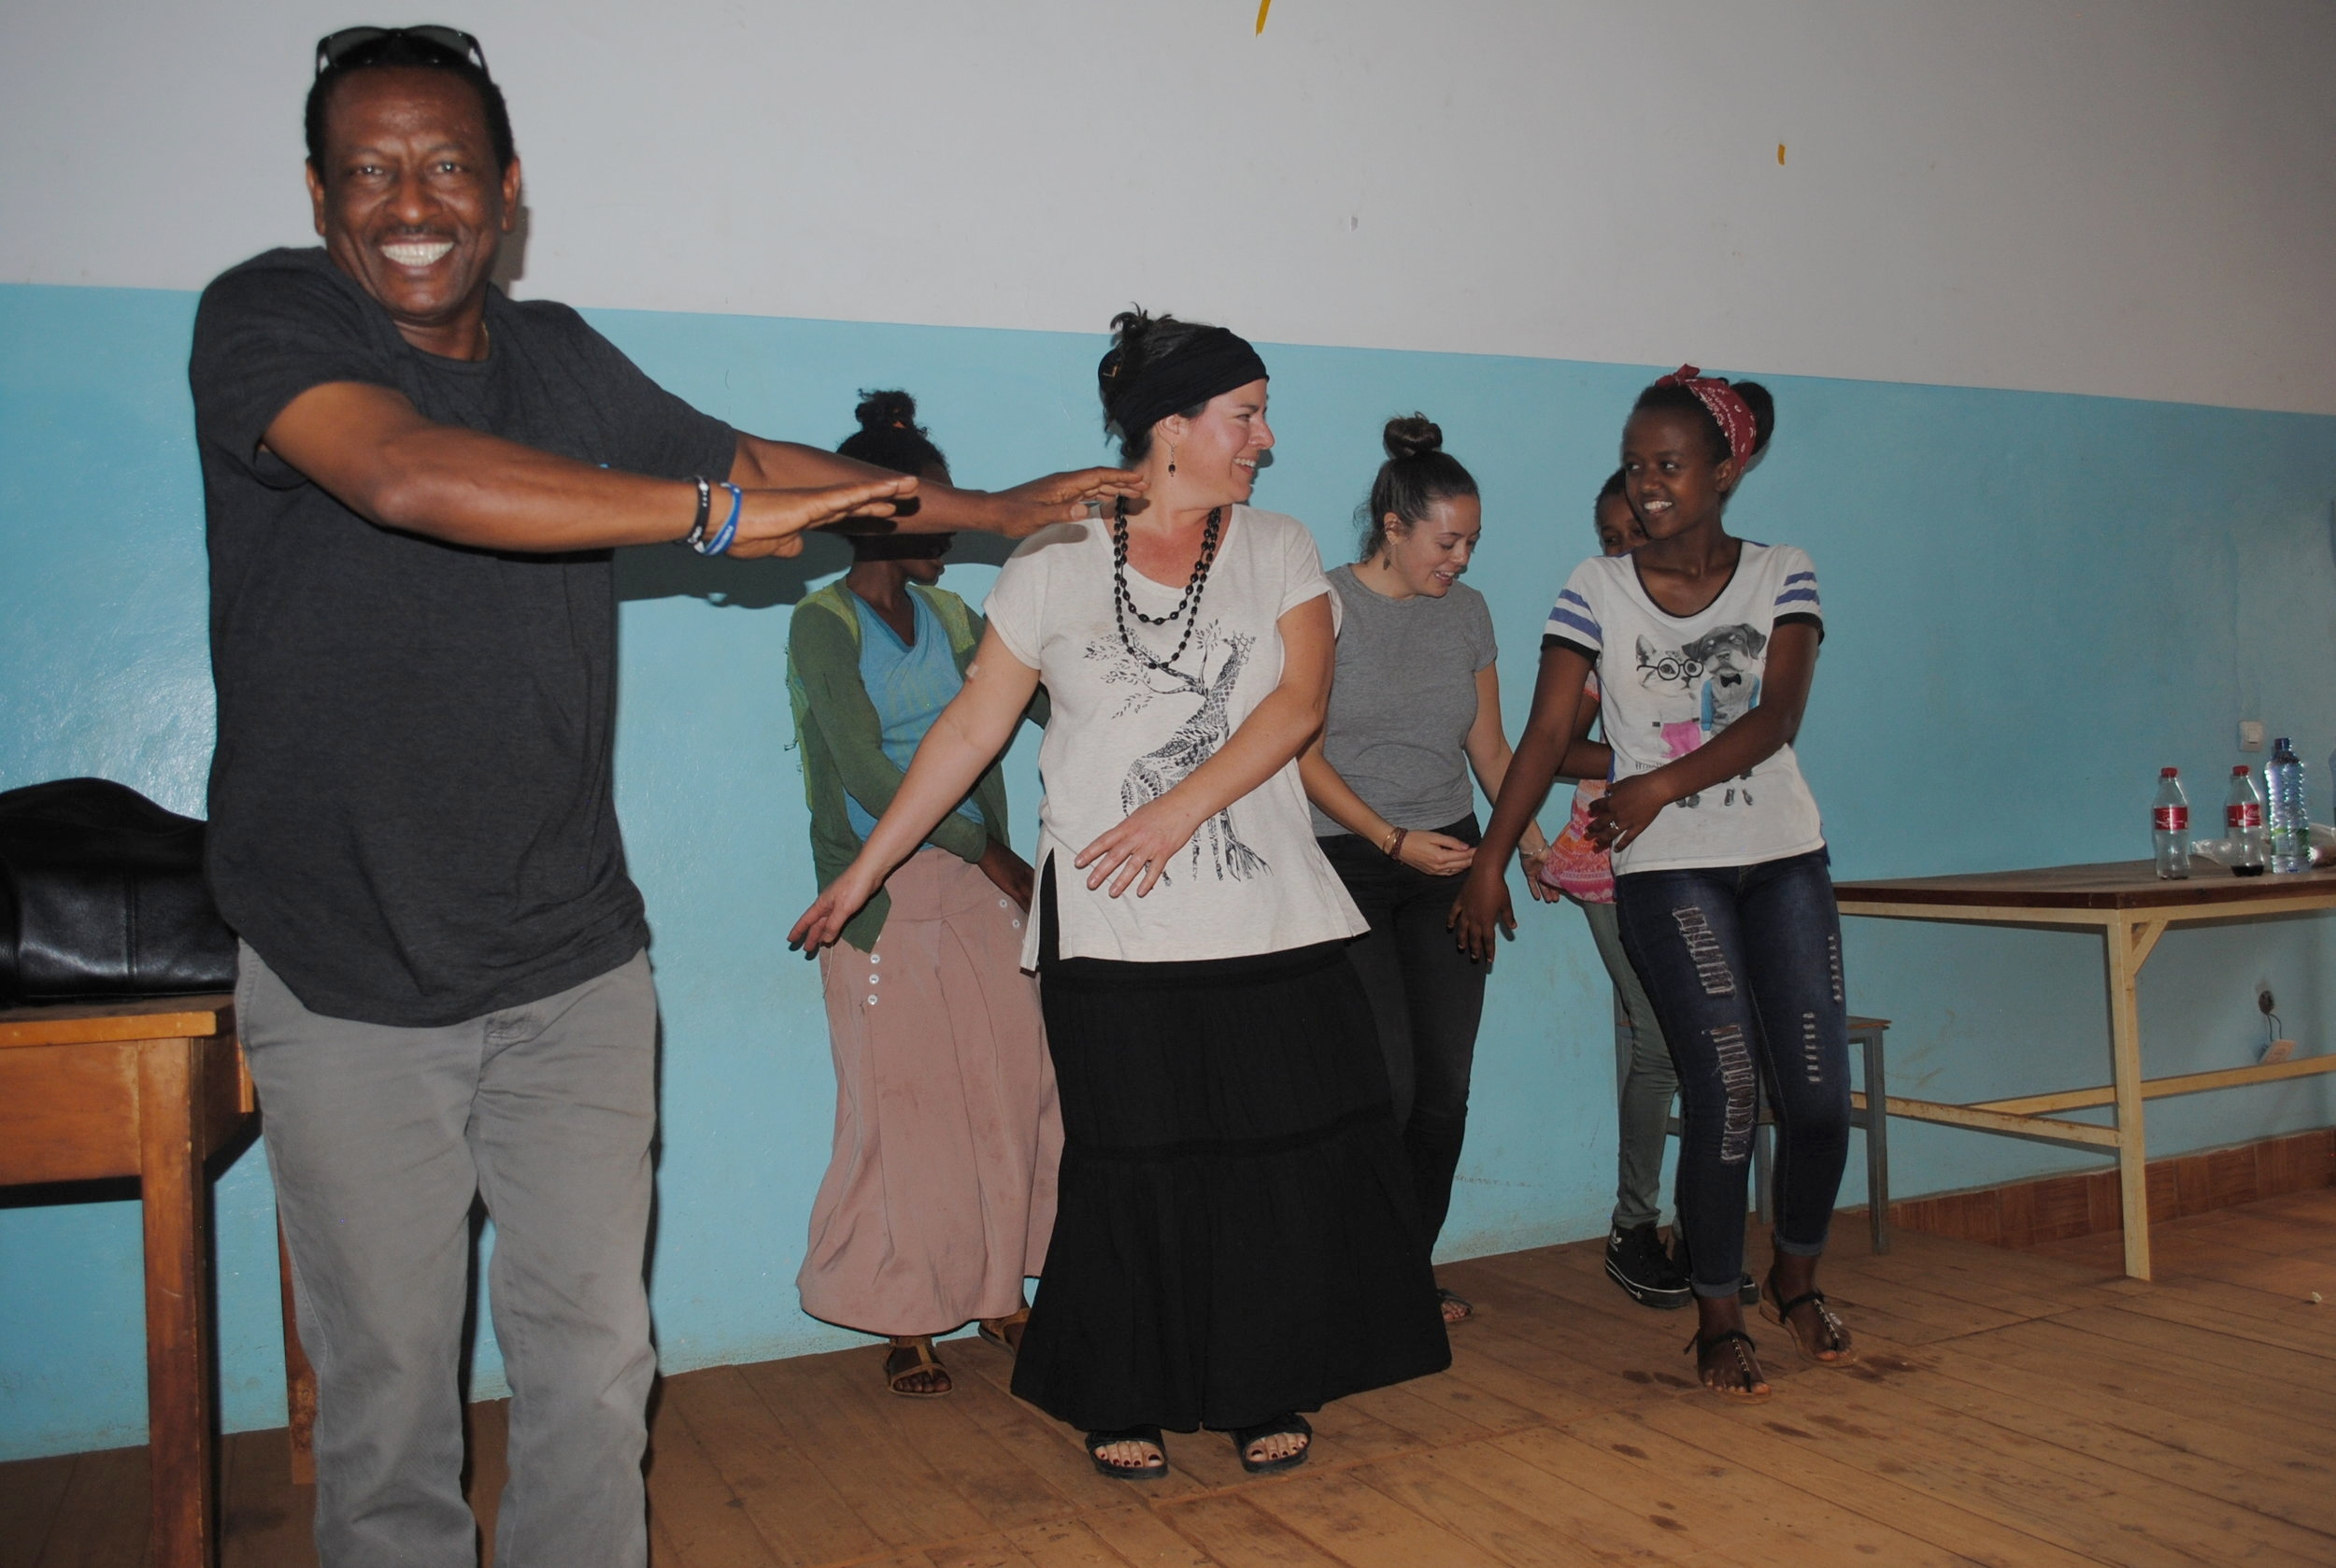 It was so much fun to see Gecho bust out his dance moves with the athletic scholars at our Girls Gotta Run party!